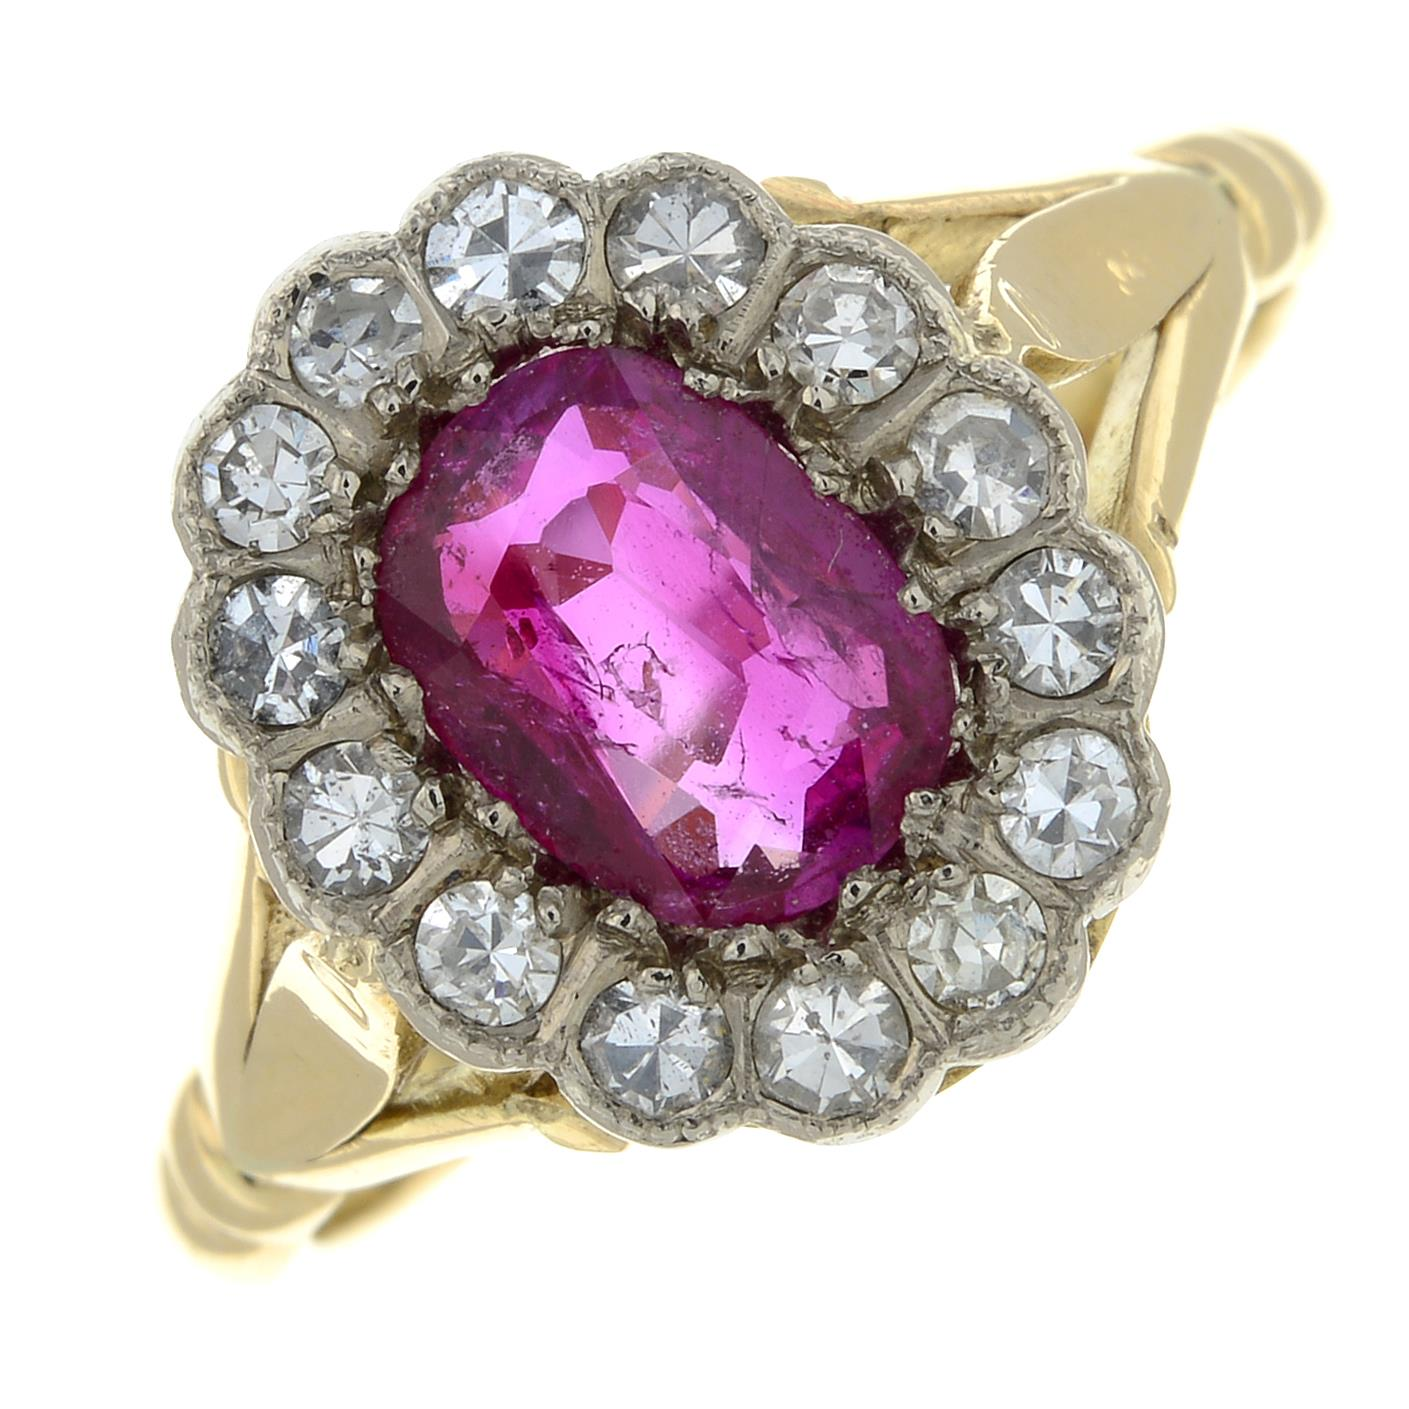 A Burmese ruby and diamond cluster ring.With report 81314-48, - Image 2 of 7